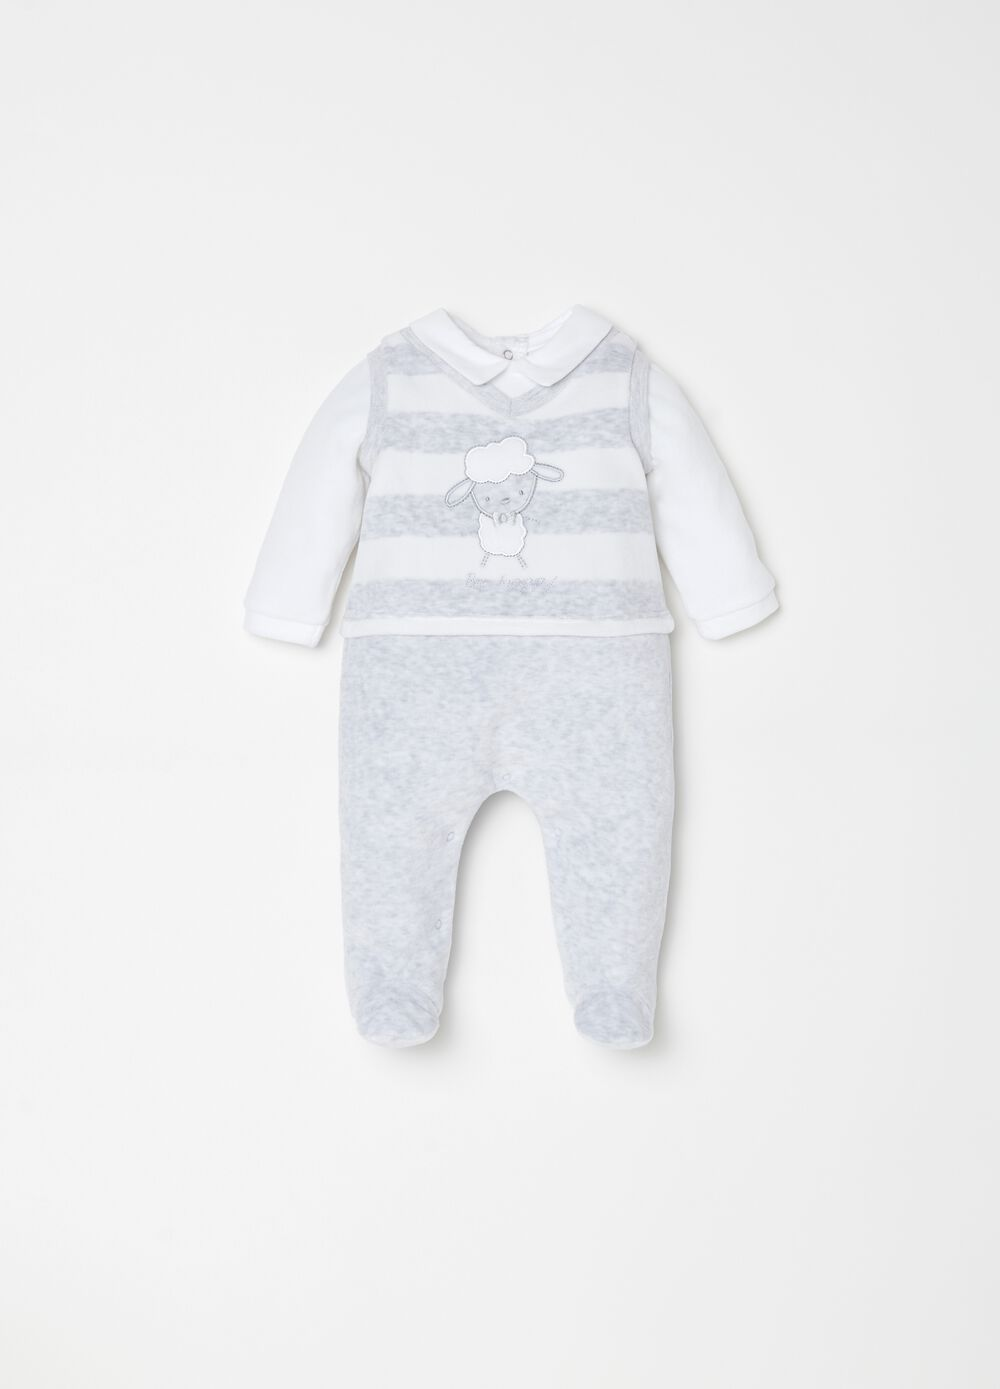 Onesie with feet, embroidery and stripes